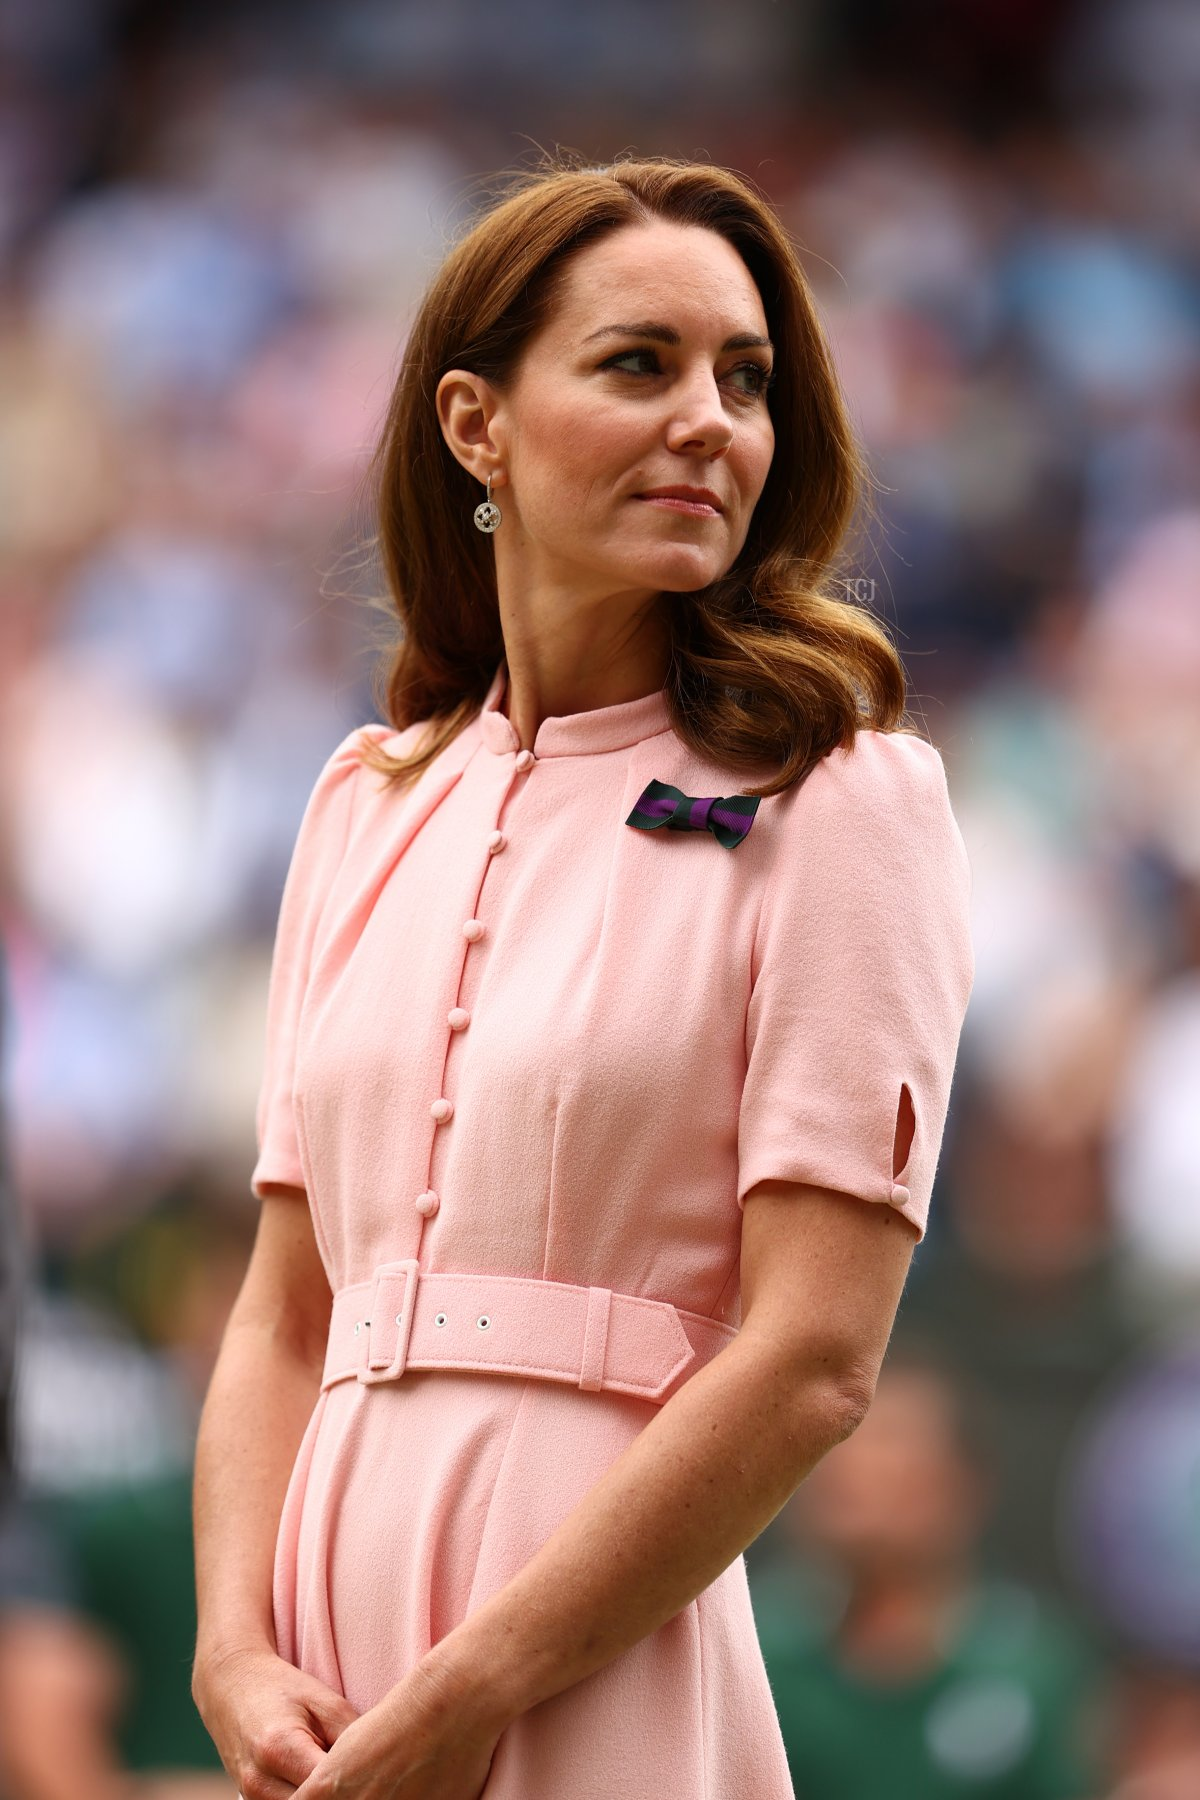 HRH Catherine, Duchess of Cambridge looks on after the men's Singles Final match between Novak Djokovic of Serbia and Matteo Berrettini of Italy on Day Thirteen of The Championships - Wimbledon 2021 at All England Lawn Tennis and Croquet Club on July 11, 2021 in London, England